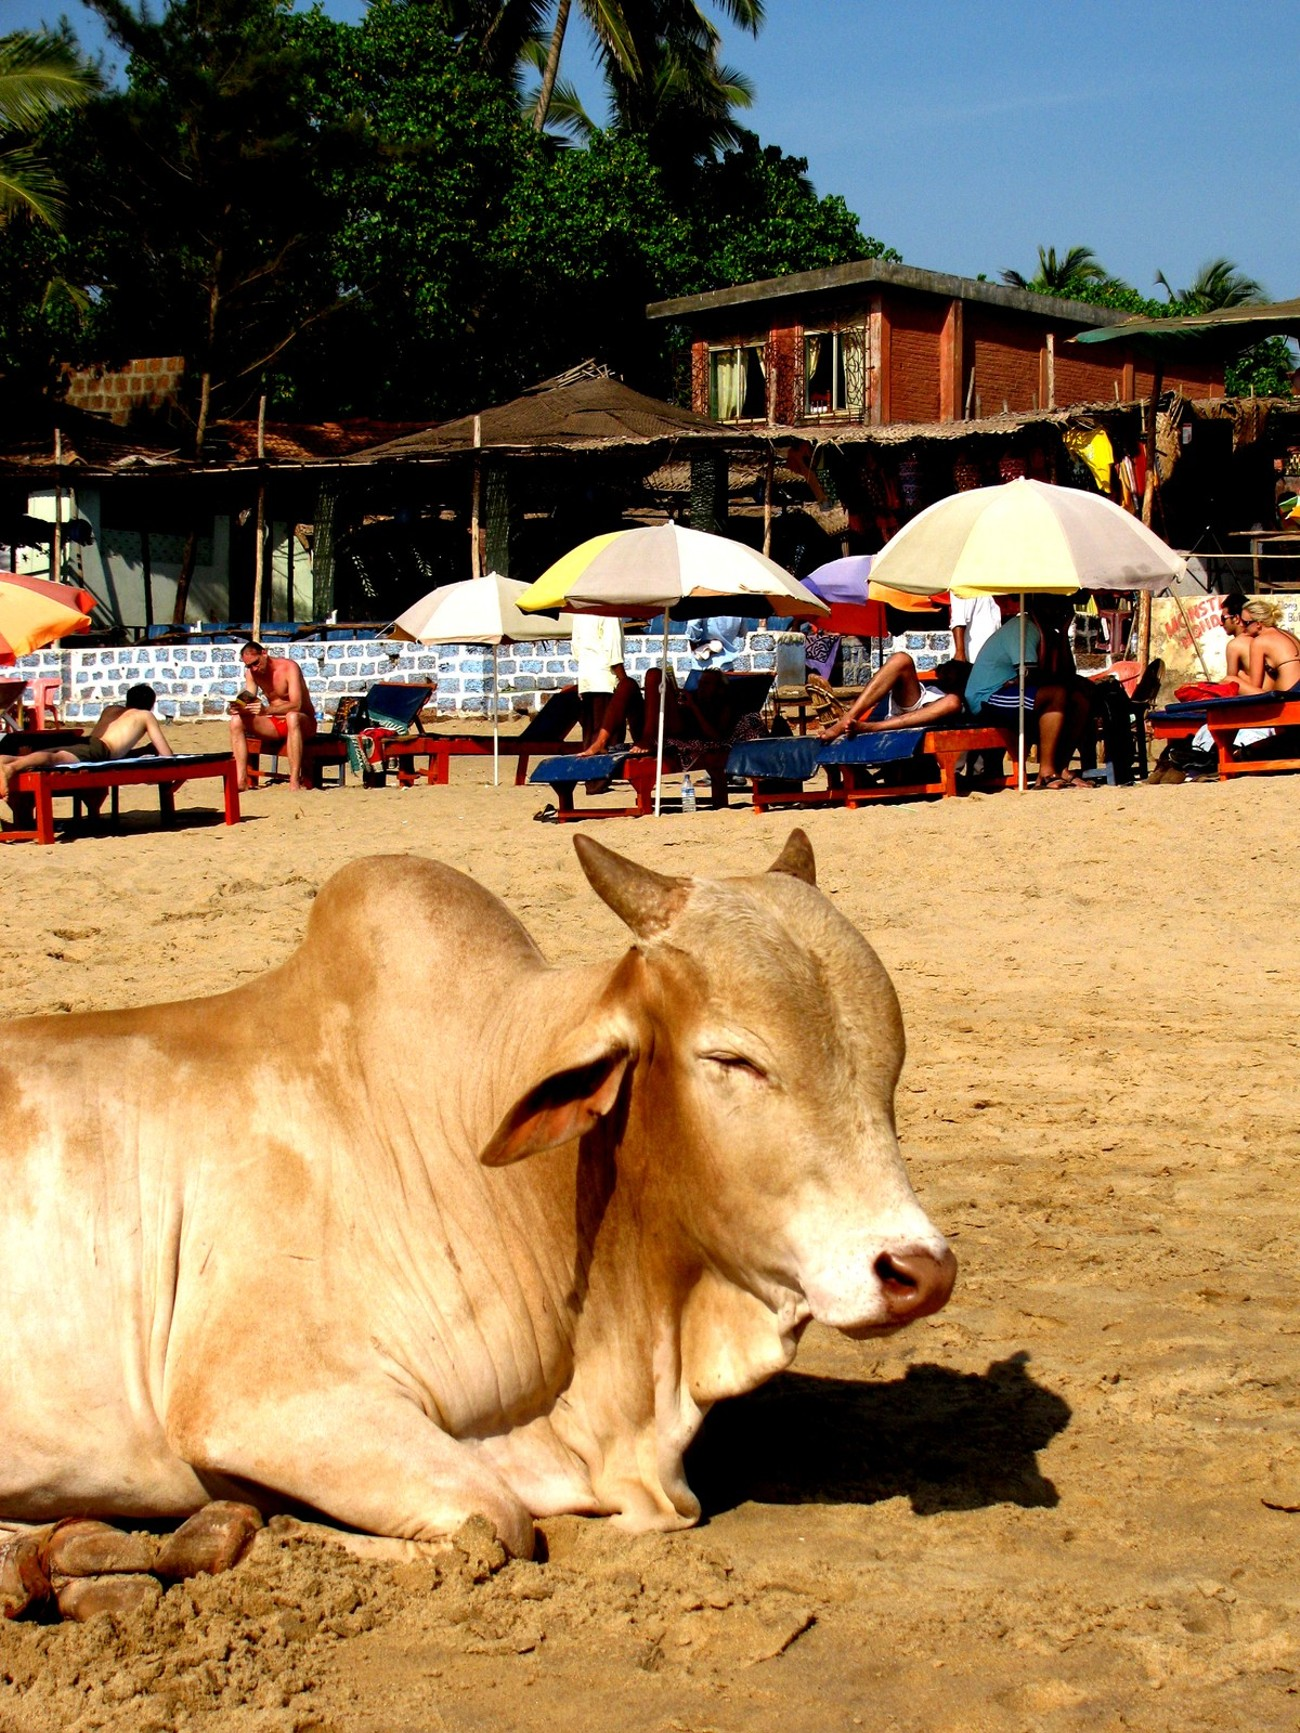 When living or traveling in India you come across cows in the most unlikely of places ...